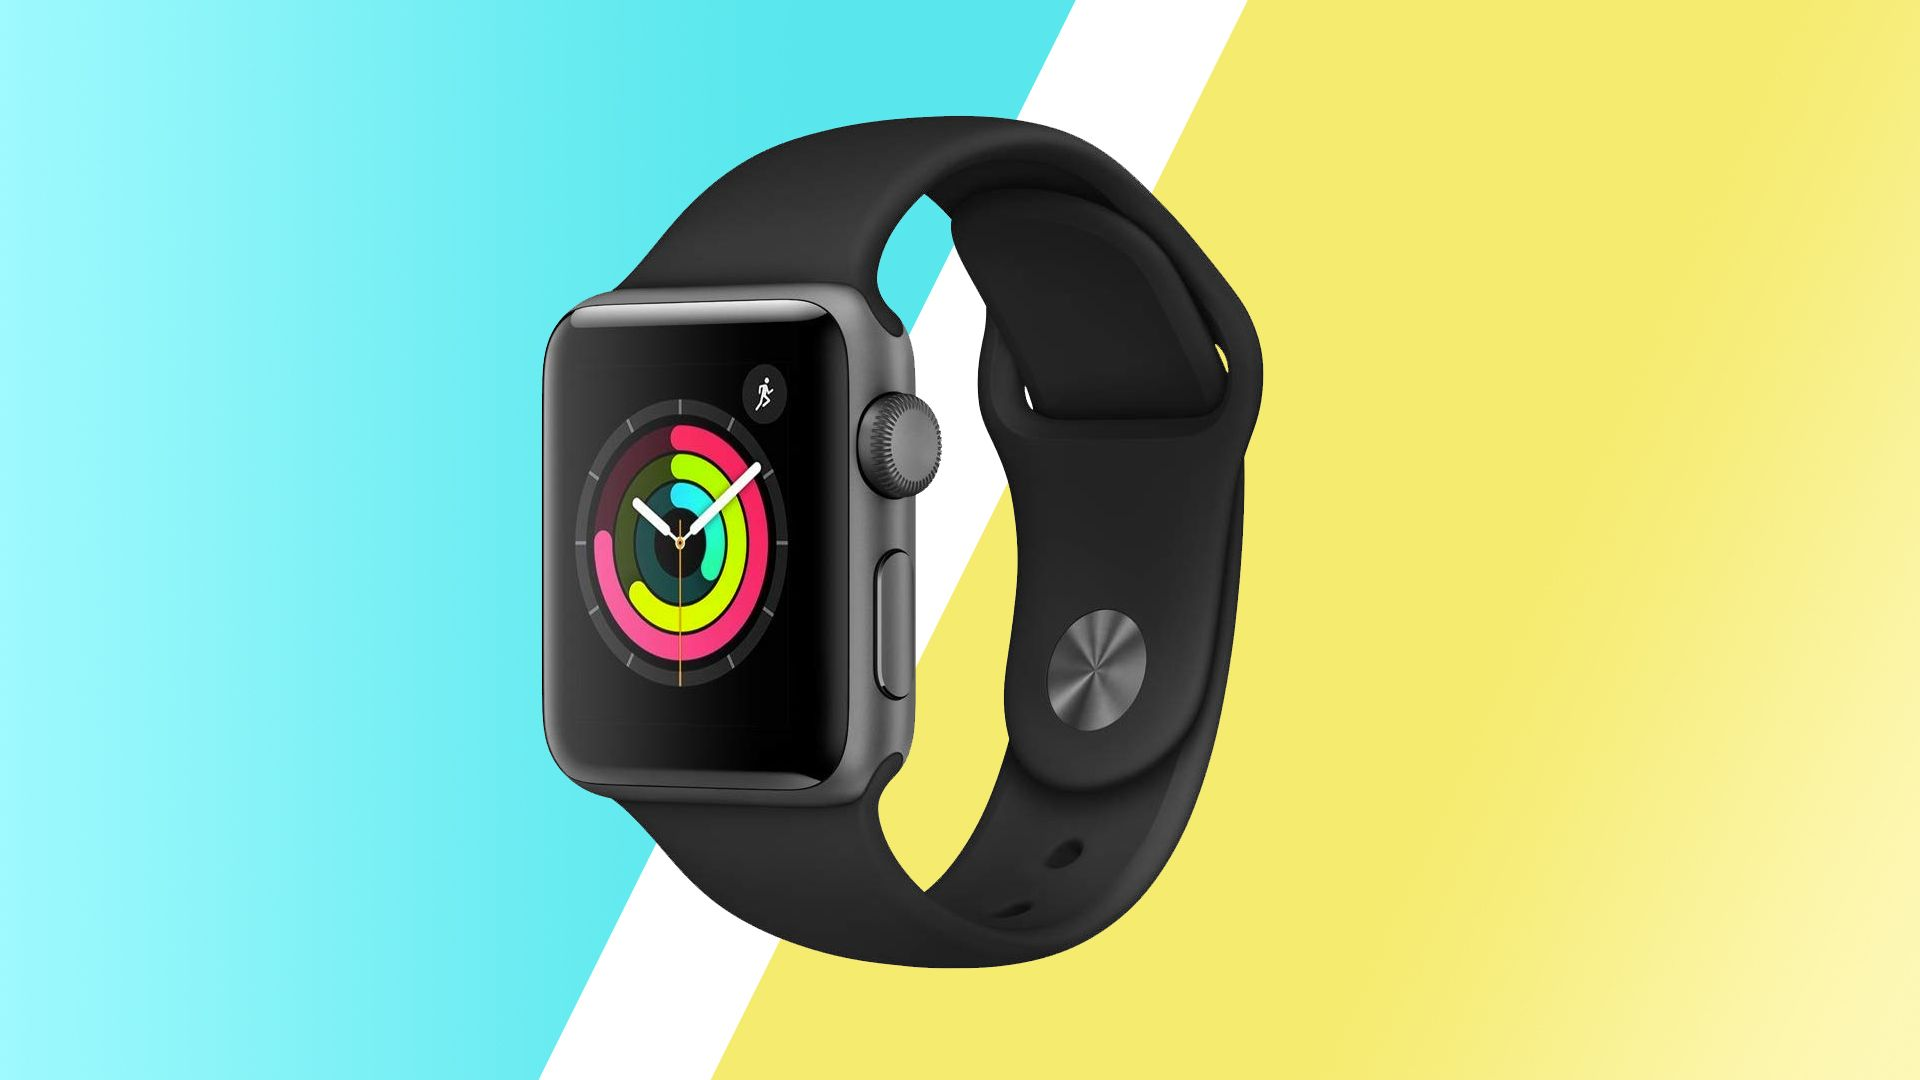 The Apple watch series 3 is on sale